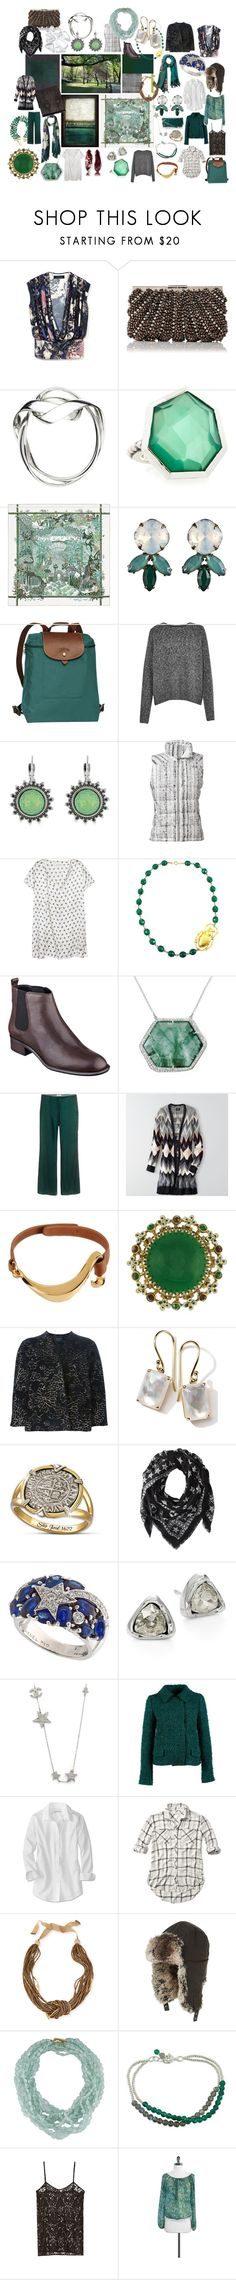 translating inspirations into items by confluence on Polyvore featuring Thakoon, American Eagle Outfitters, Abercrombie & Fitch, French Connection, Pierre Balmain, Diane Von Furstenberg, Lanvin, Dolce&Gabbana, H&M and Balmain